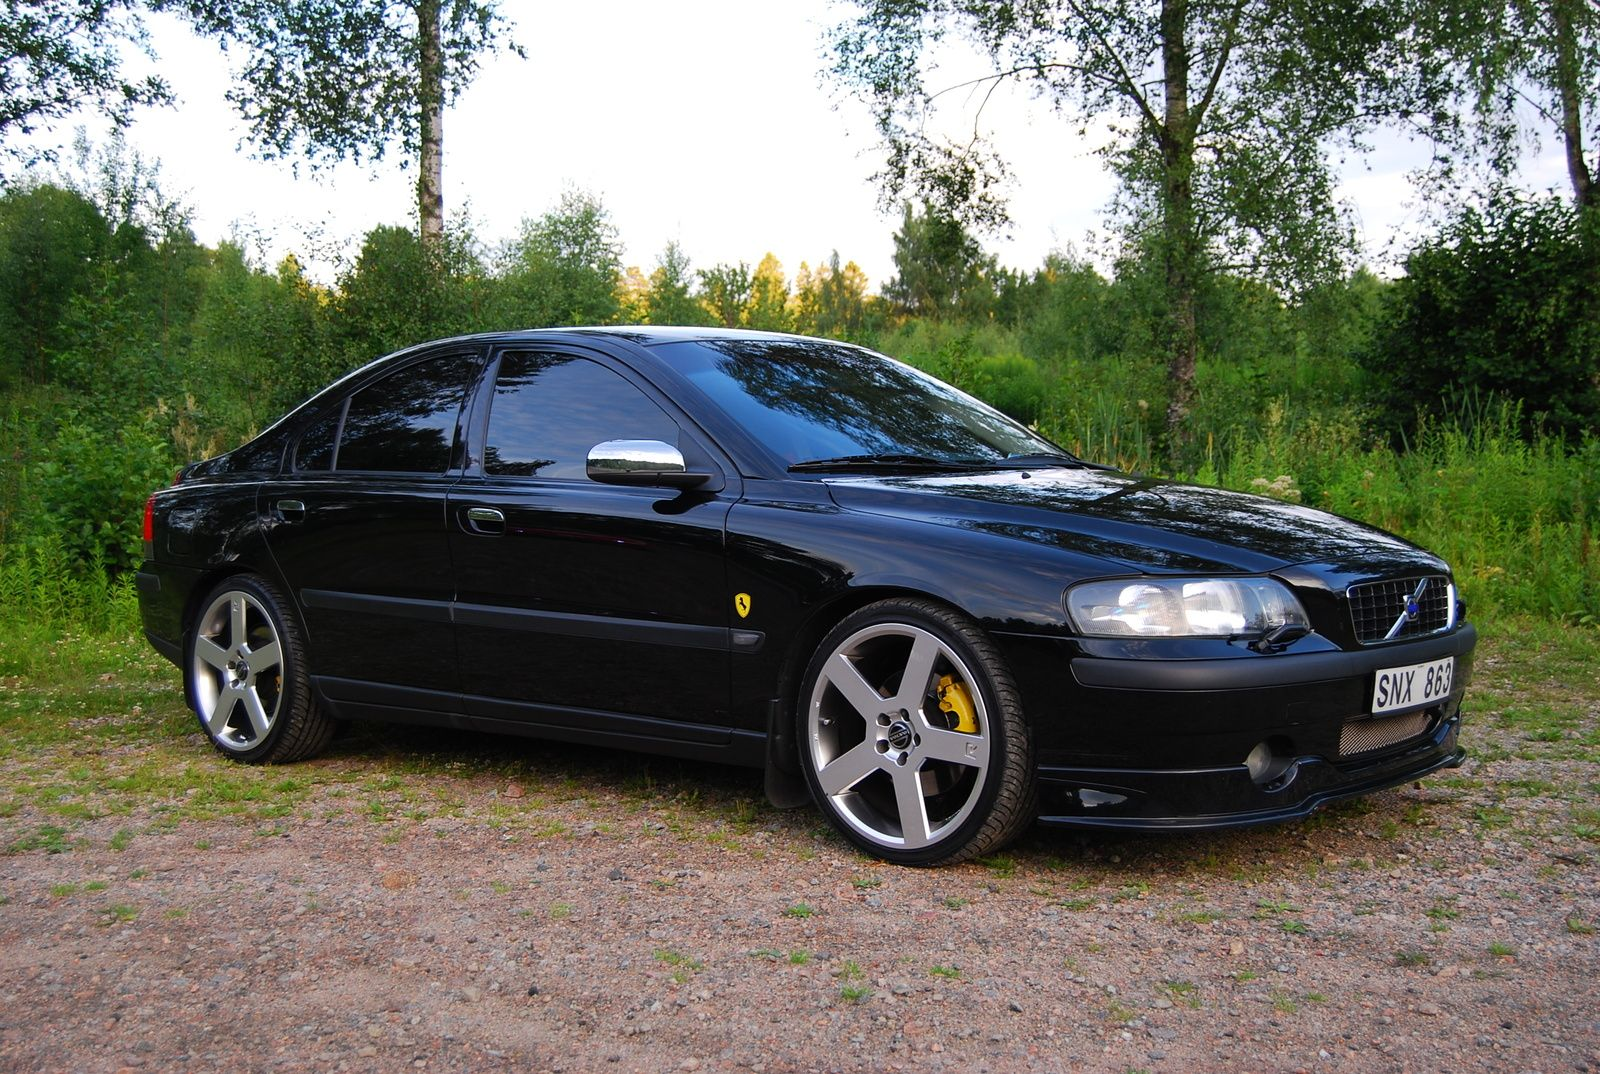 2001 Volvo S60 2.4T | Products I Love | Pinterest | Volvo s60 ...